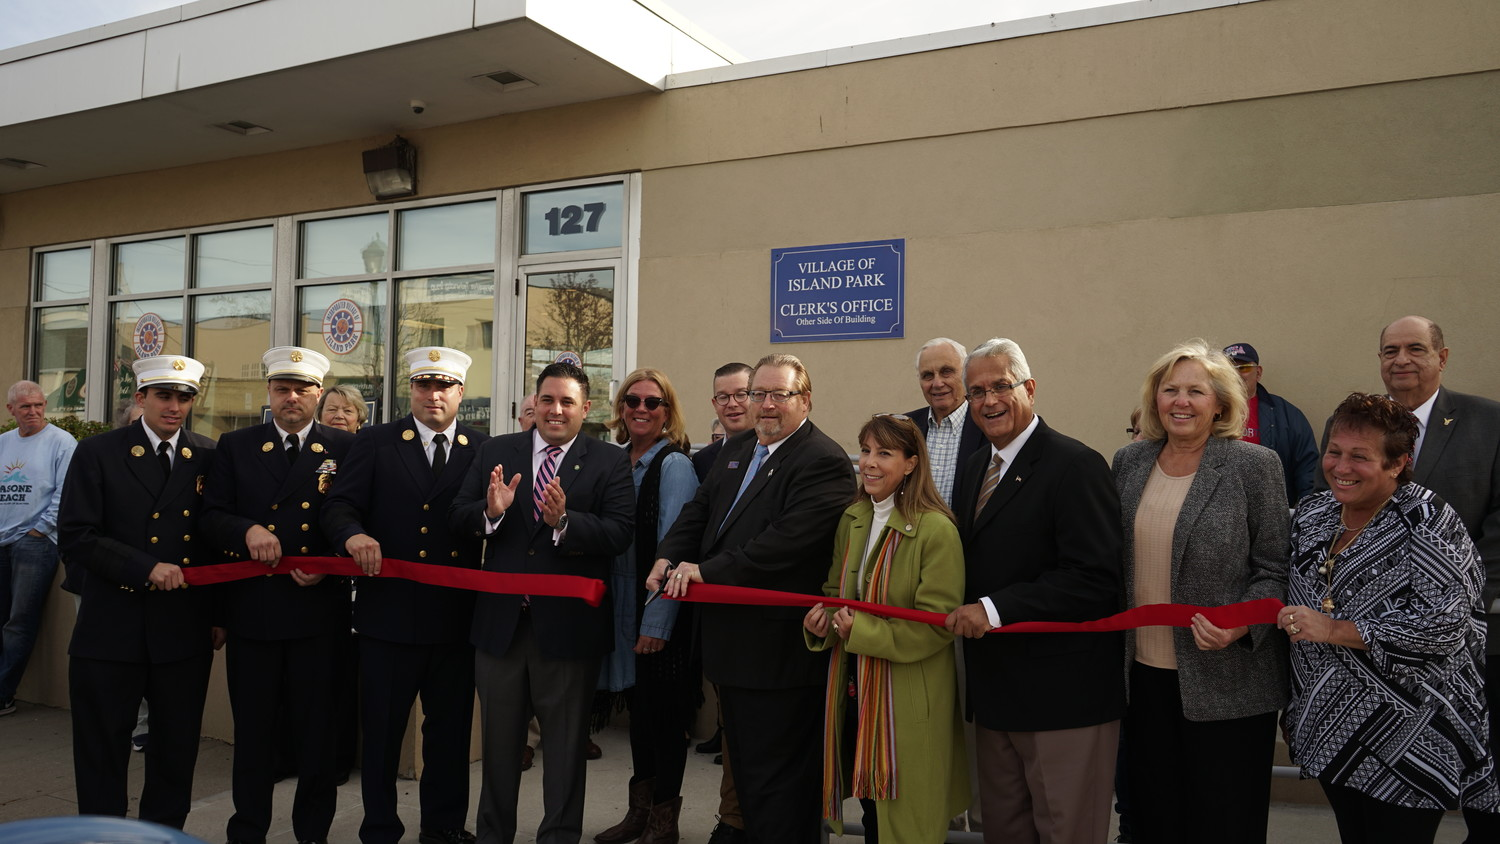 Elected officials came out in force to celebrate Island Park's Village Hall ribbon cutting ceremony.